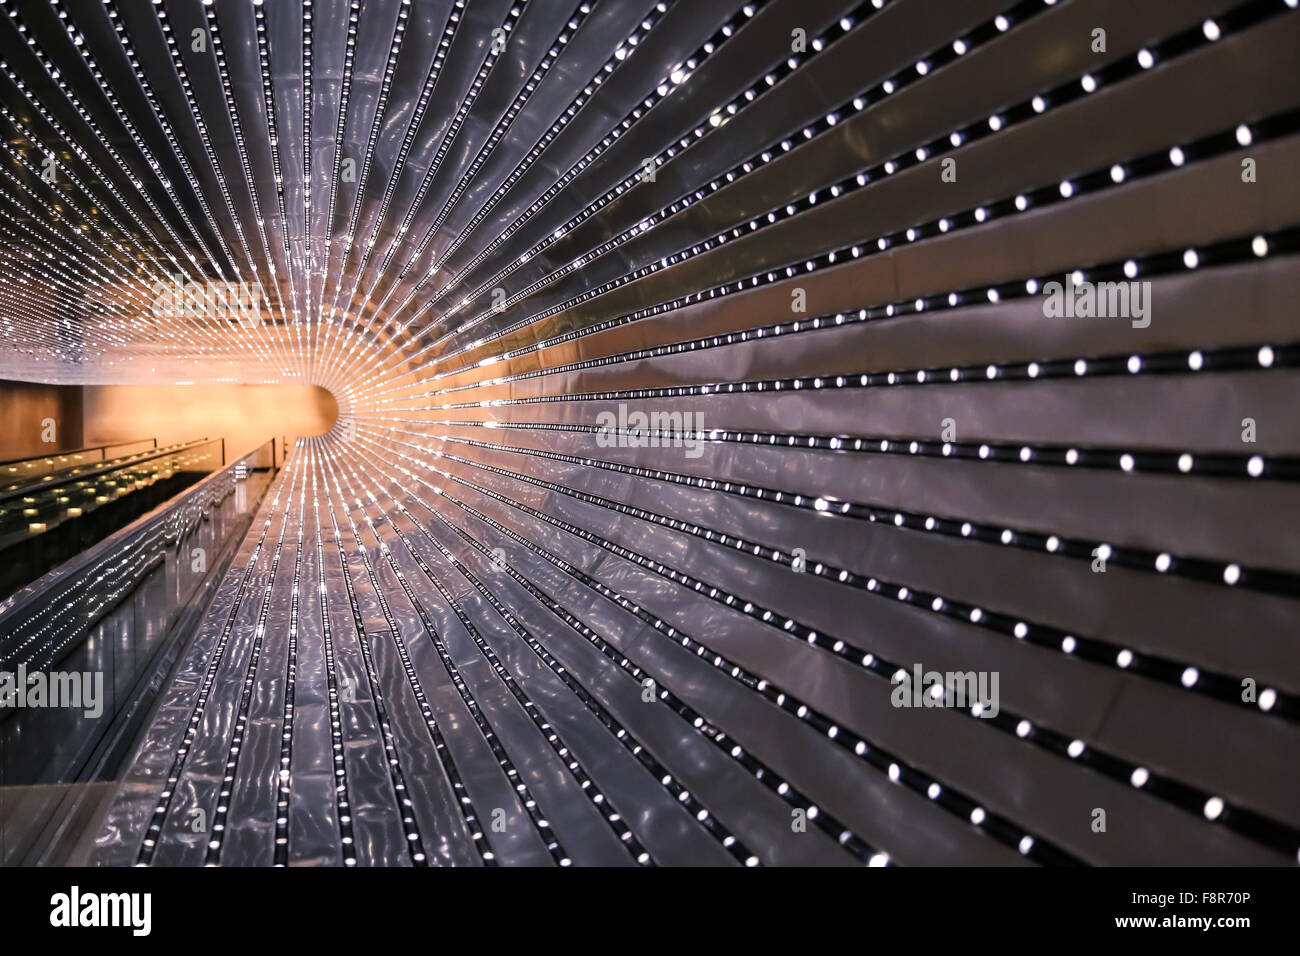 National Gallery of Art Moving Walkway and Multiverse Light Sculpture - Stock Image